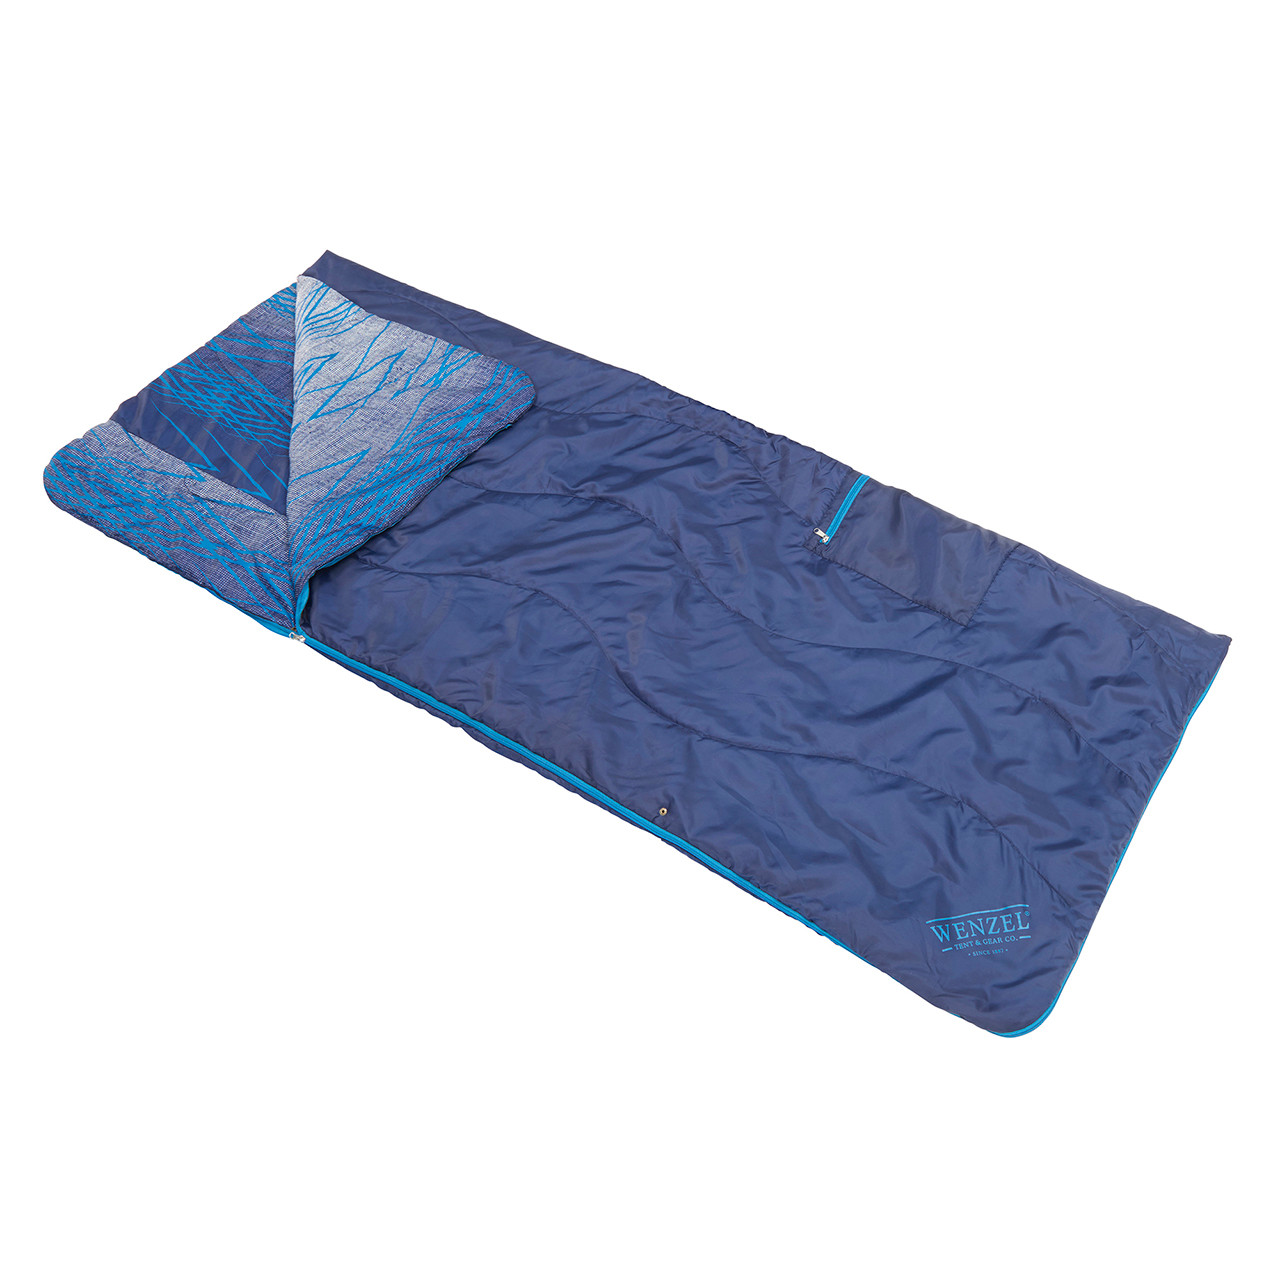 Wenzel Everett All-In-One Poncho, blue, laying flat as a sleeping bag with one corner slightly folded over showing a multi-color blue interior